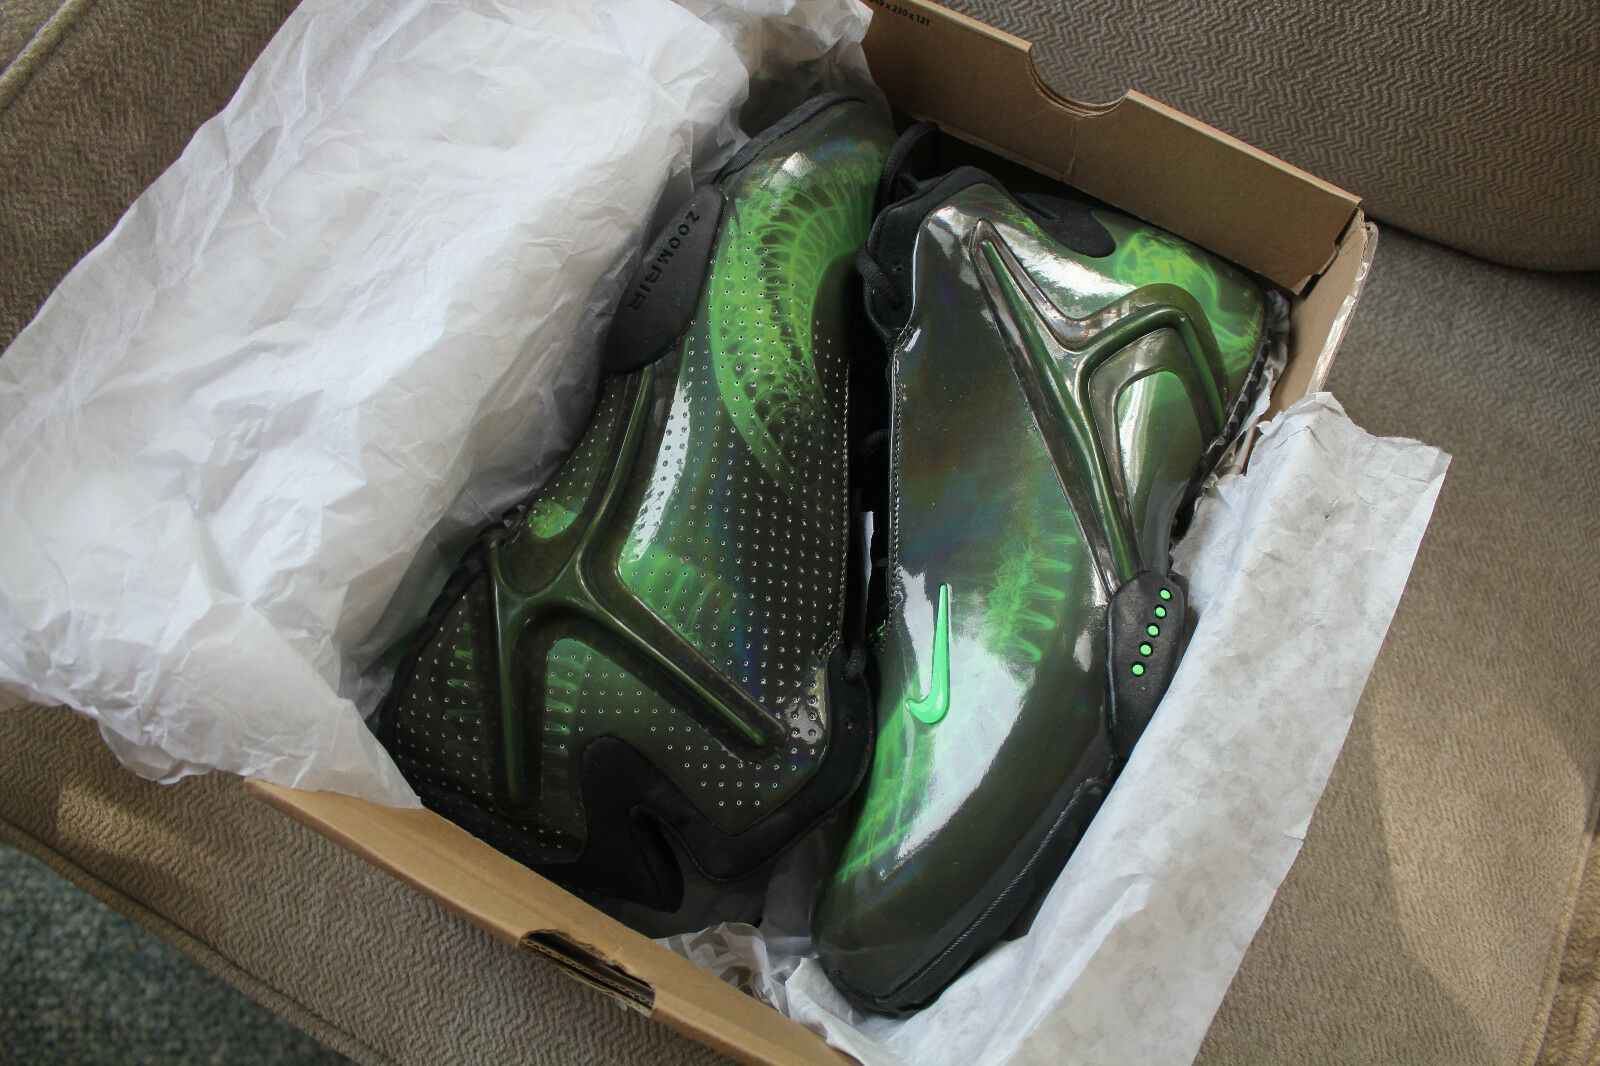 Brand New In The Box Nike Kobe Bryant Hyperflight Zoom Prm 587561-001 Size 13